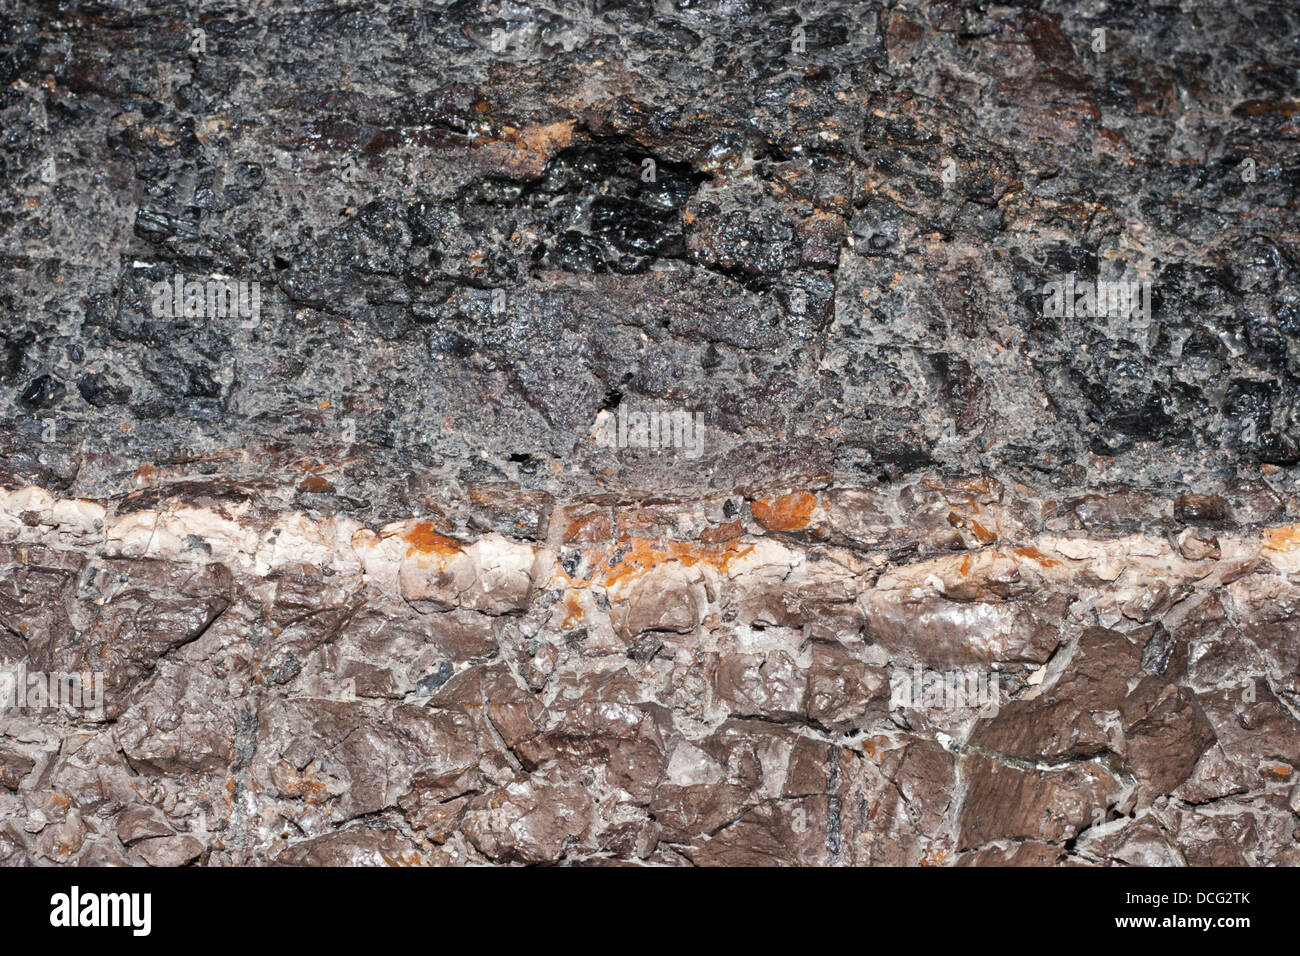 Sample of the K-T (Cretaceous-Tertiary) boundary from the Frenchman River Valley in Saskatchewan - Stock Image